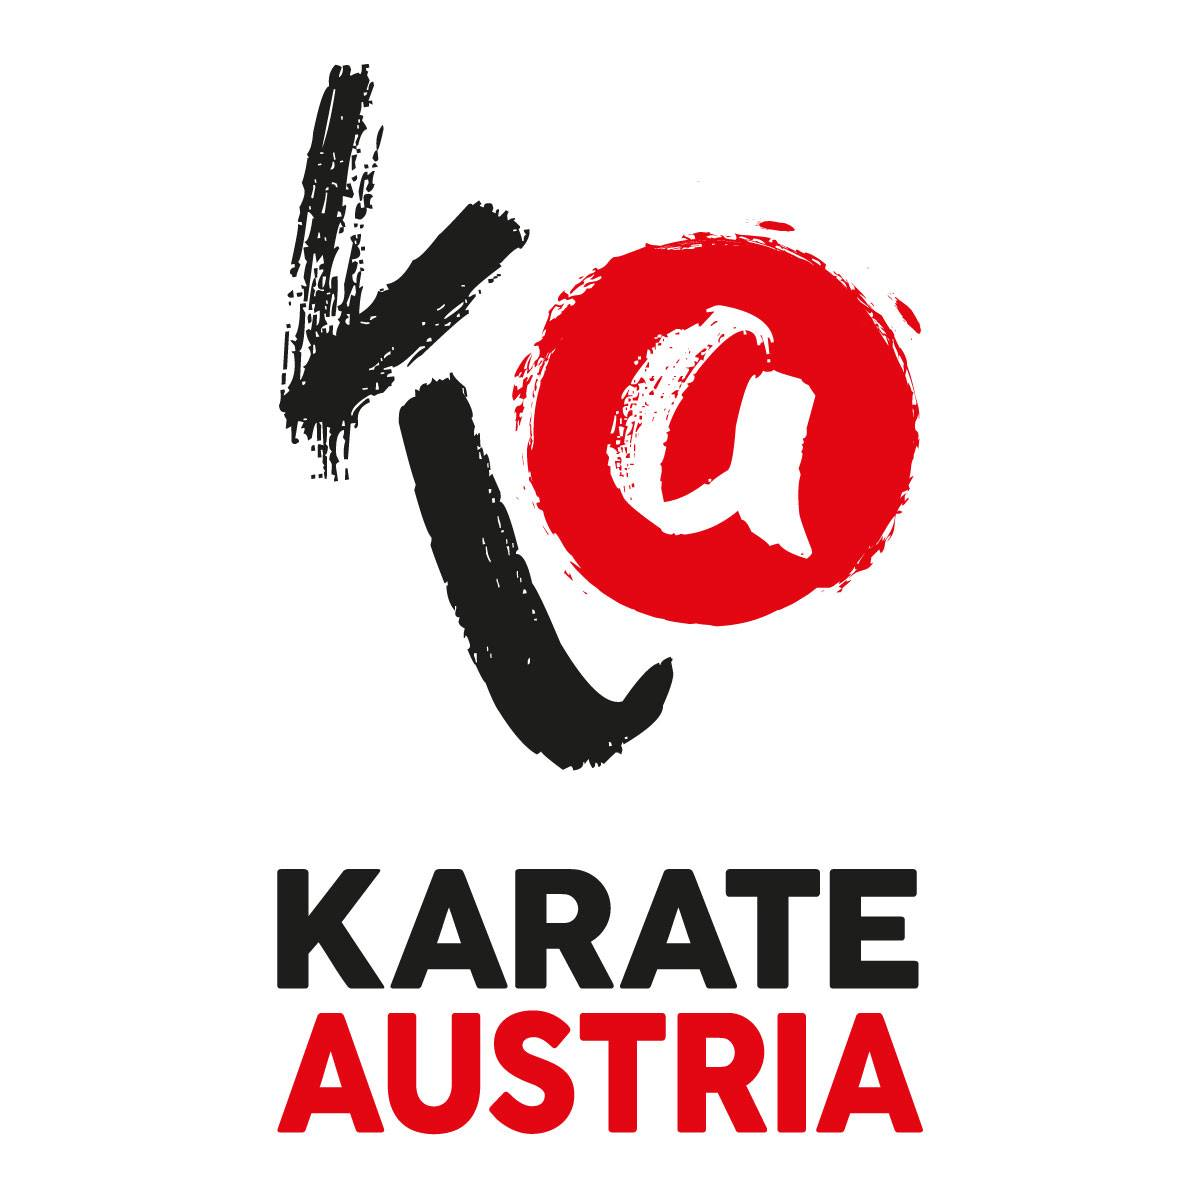 KARATE AUSTRIA Tag 2020